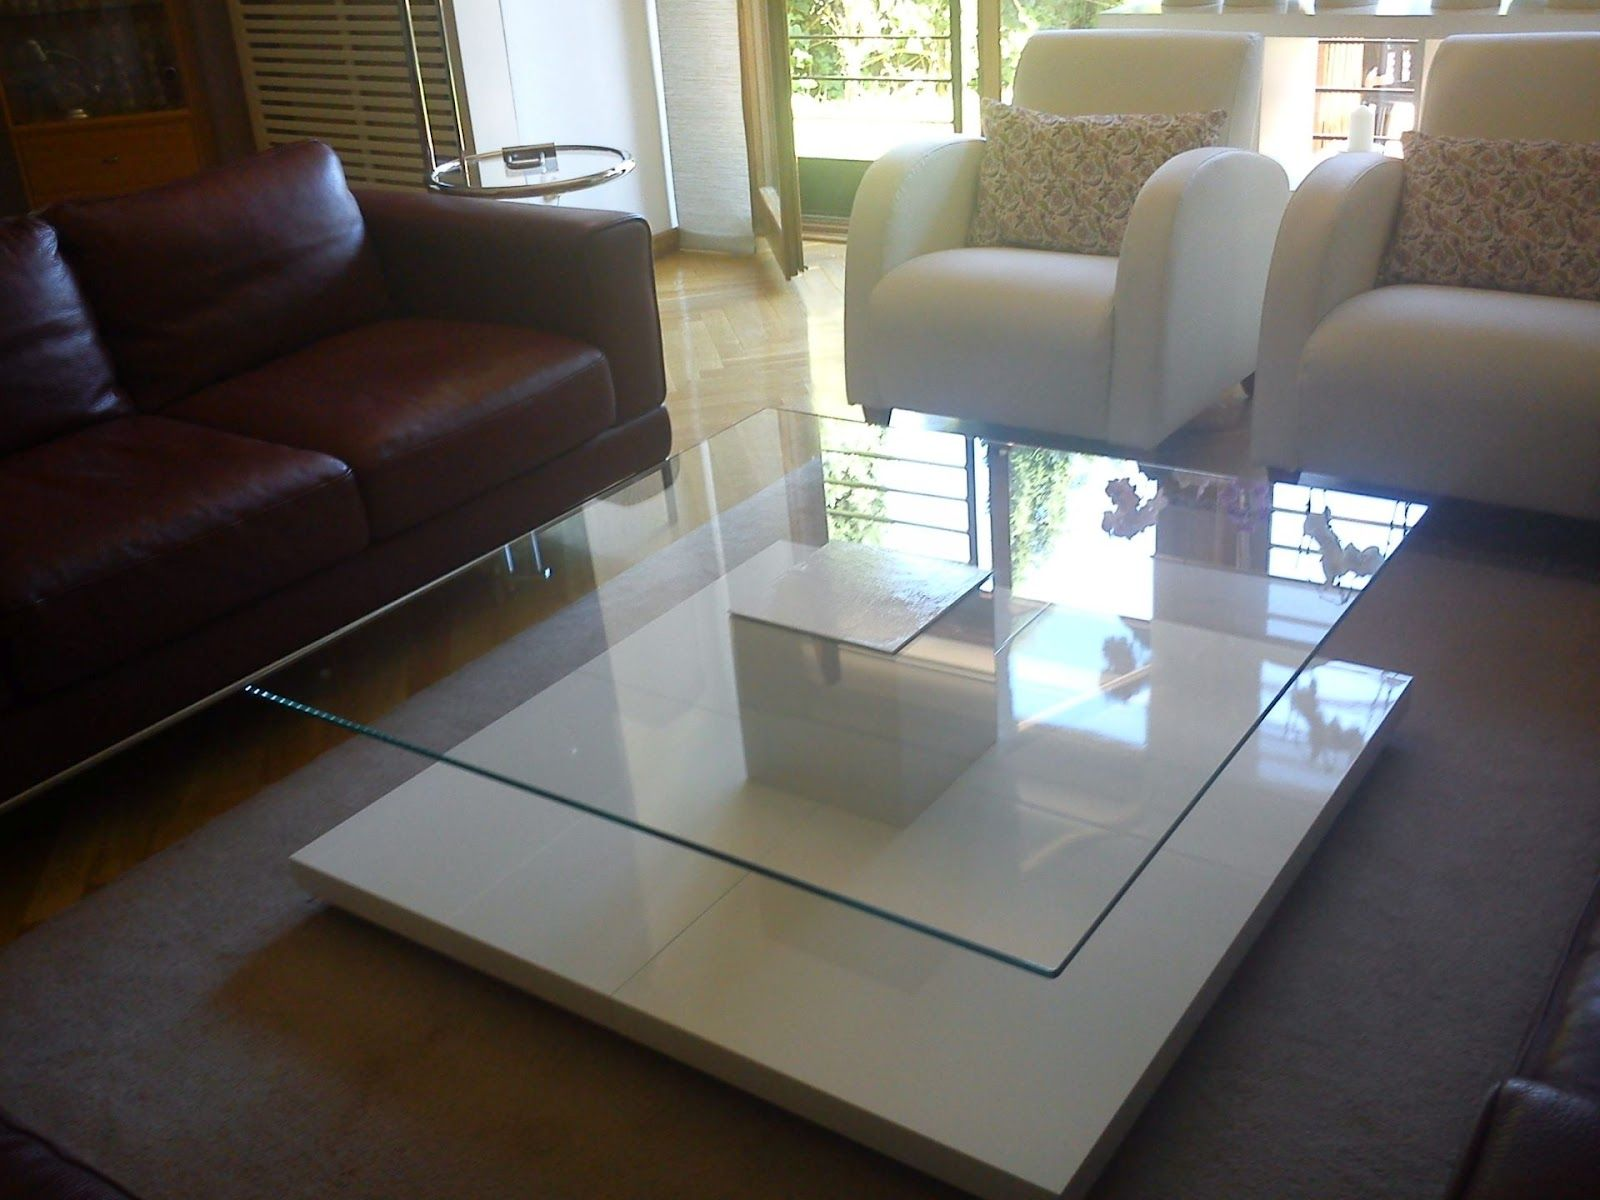 Four Lack Table Base Coffee Table Ikea Hackers Lack Table Ikea Lack Side Table Coffee Table [ 1200 x 1600 Pixel ]